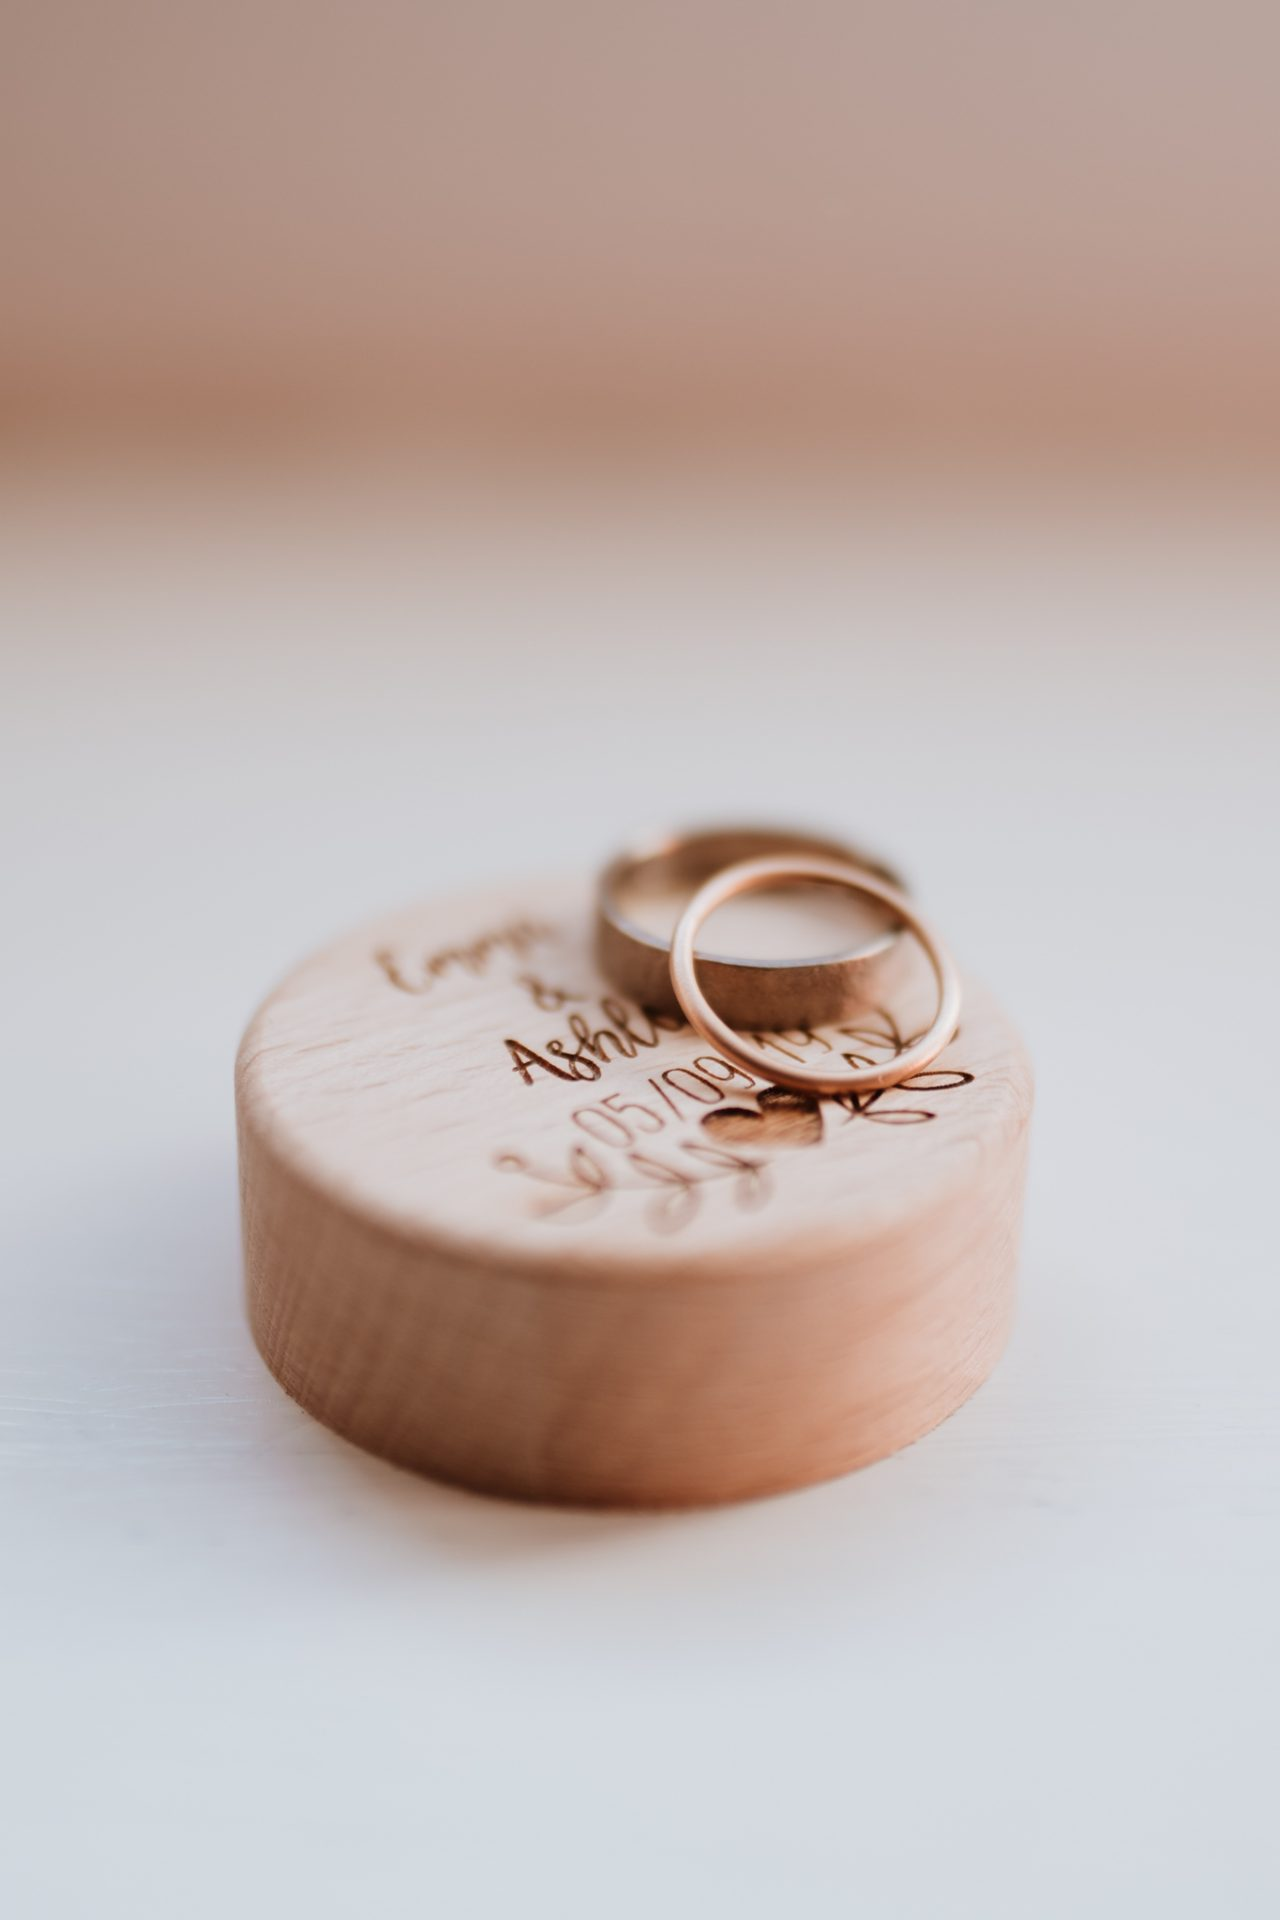 rose gold wedding rings on personalised ring box